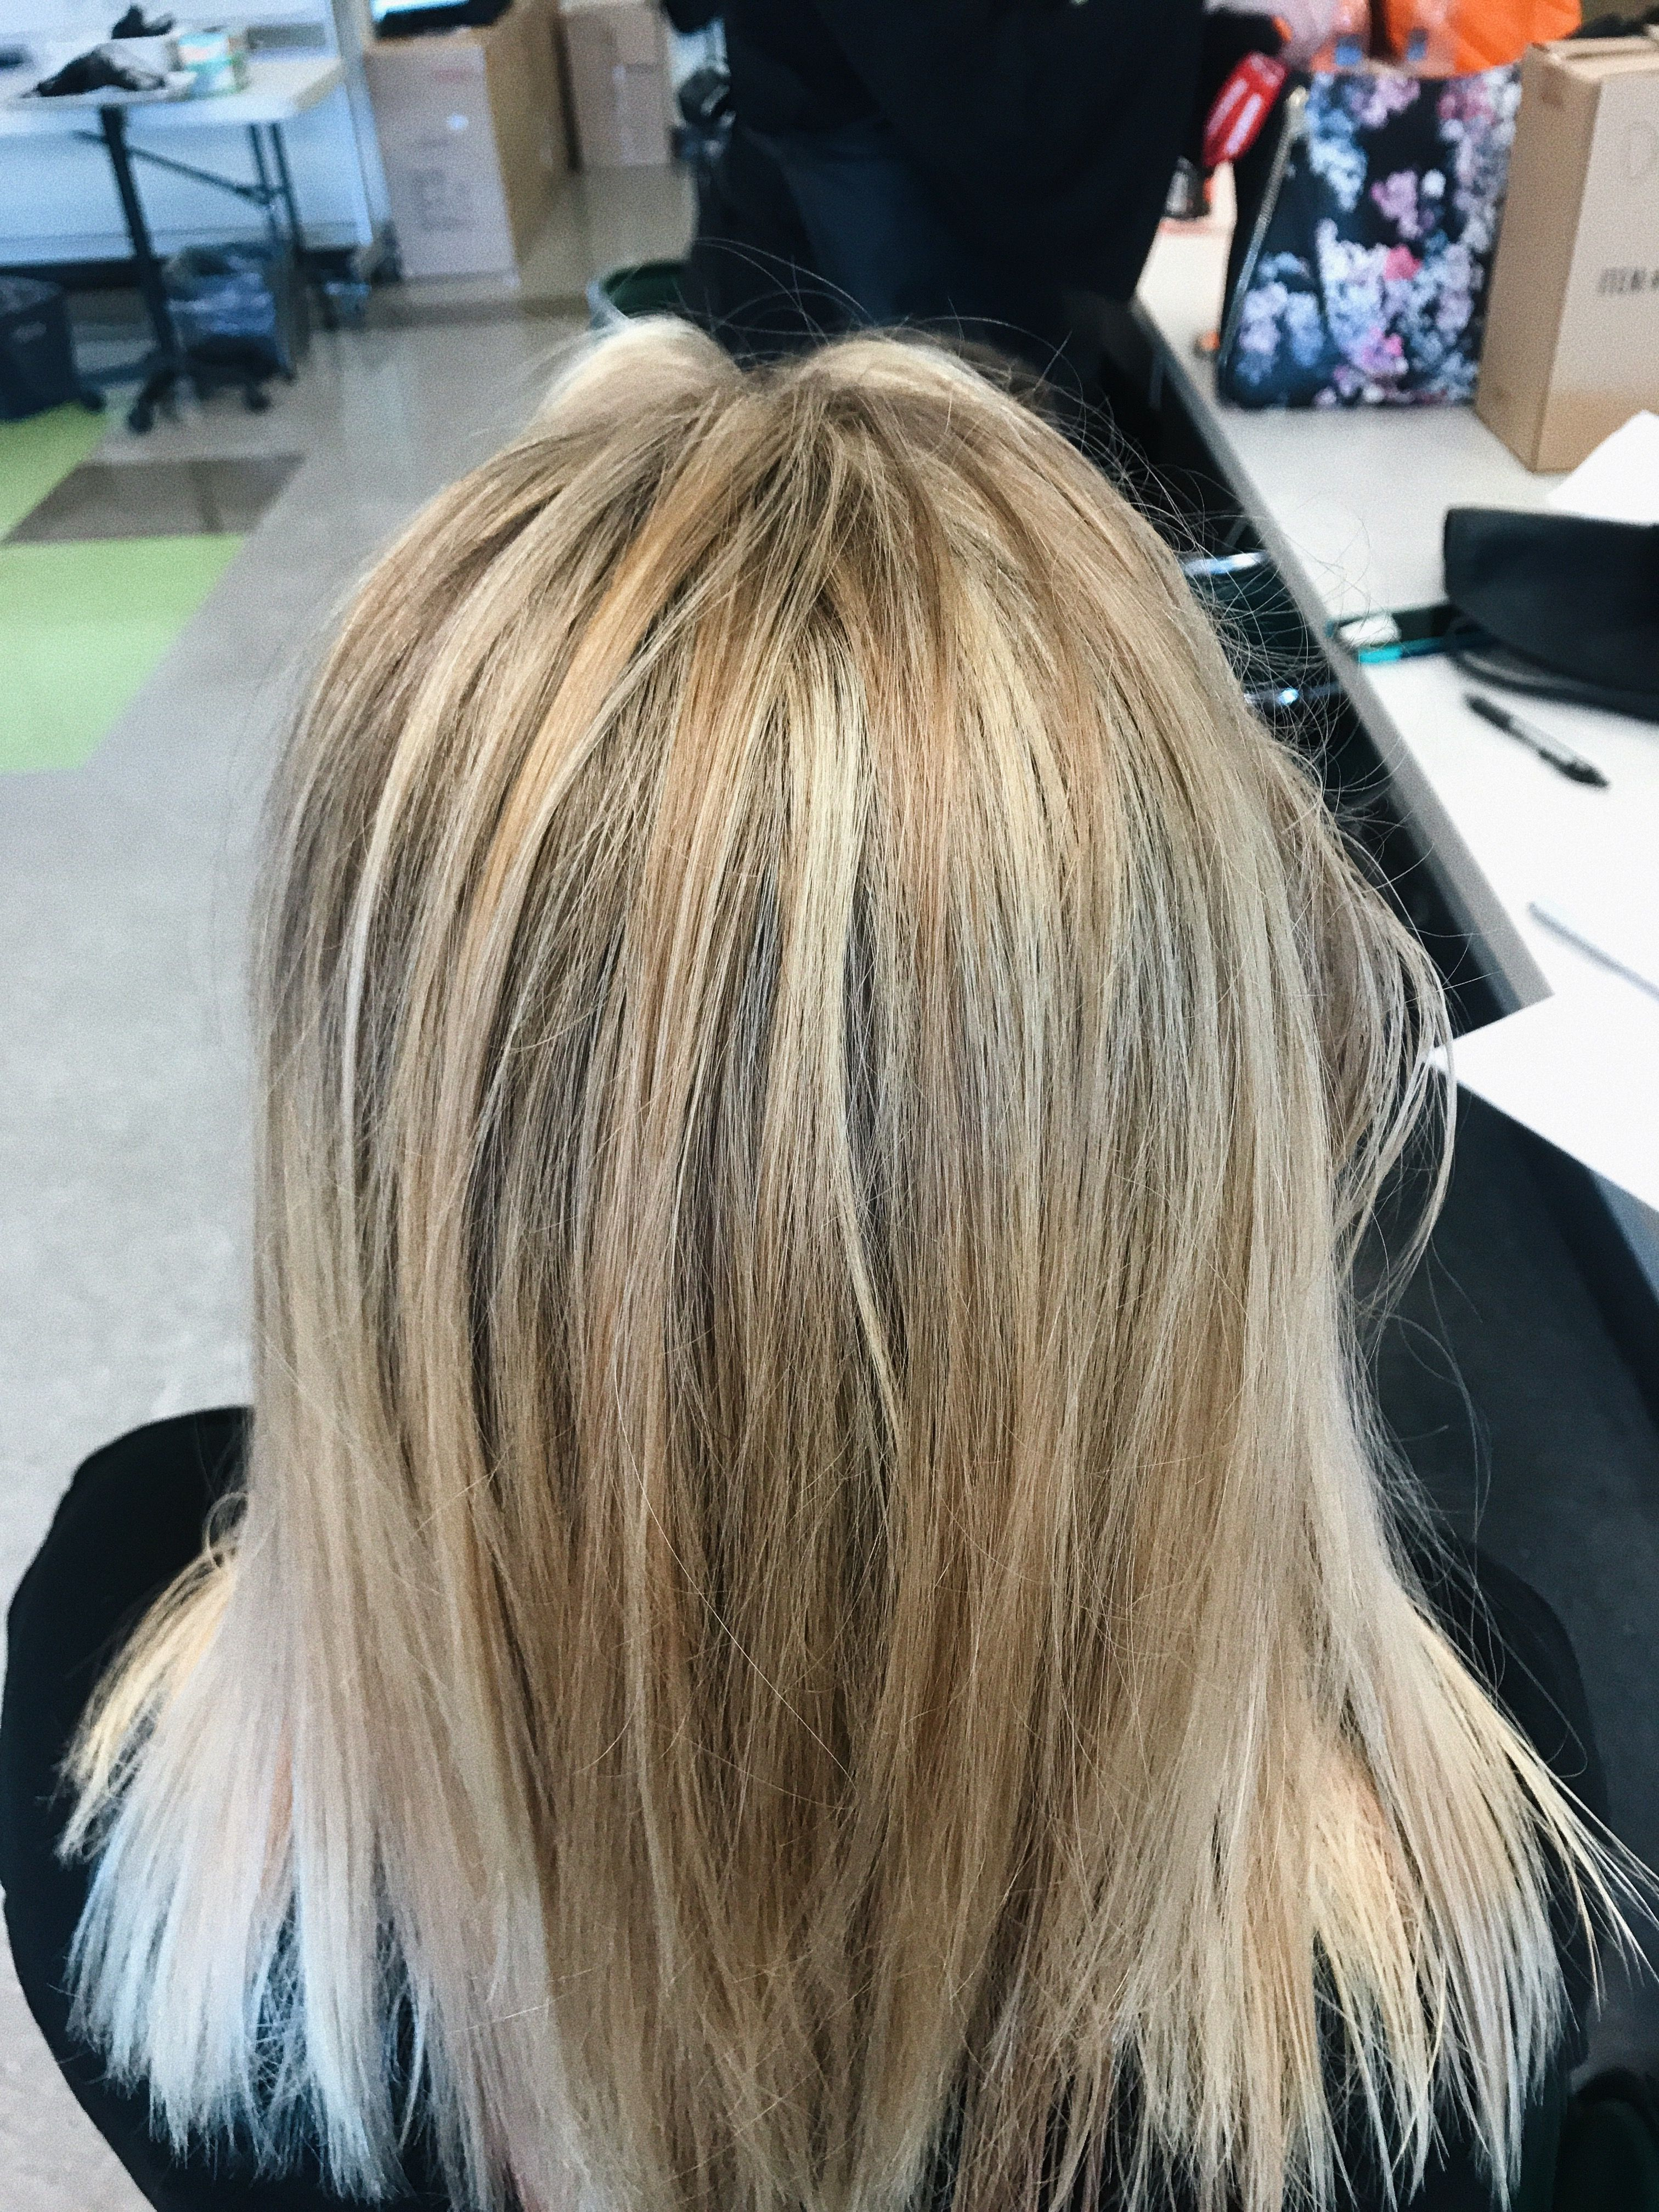 Results Of Herringbone Foils Pretty Level 9 Hair Color Long